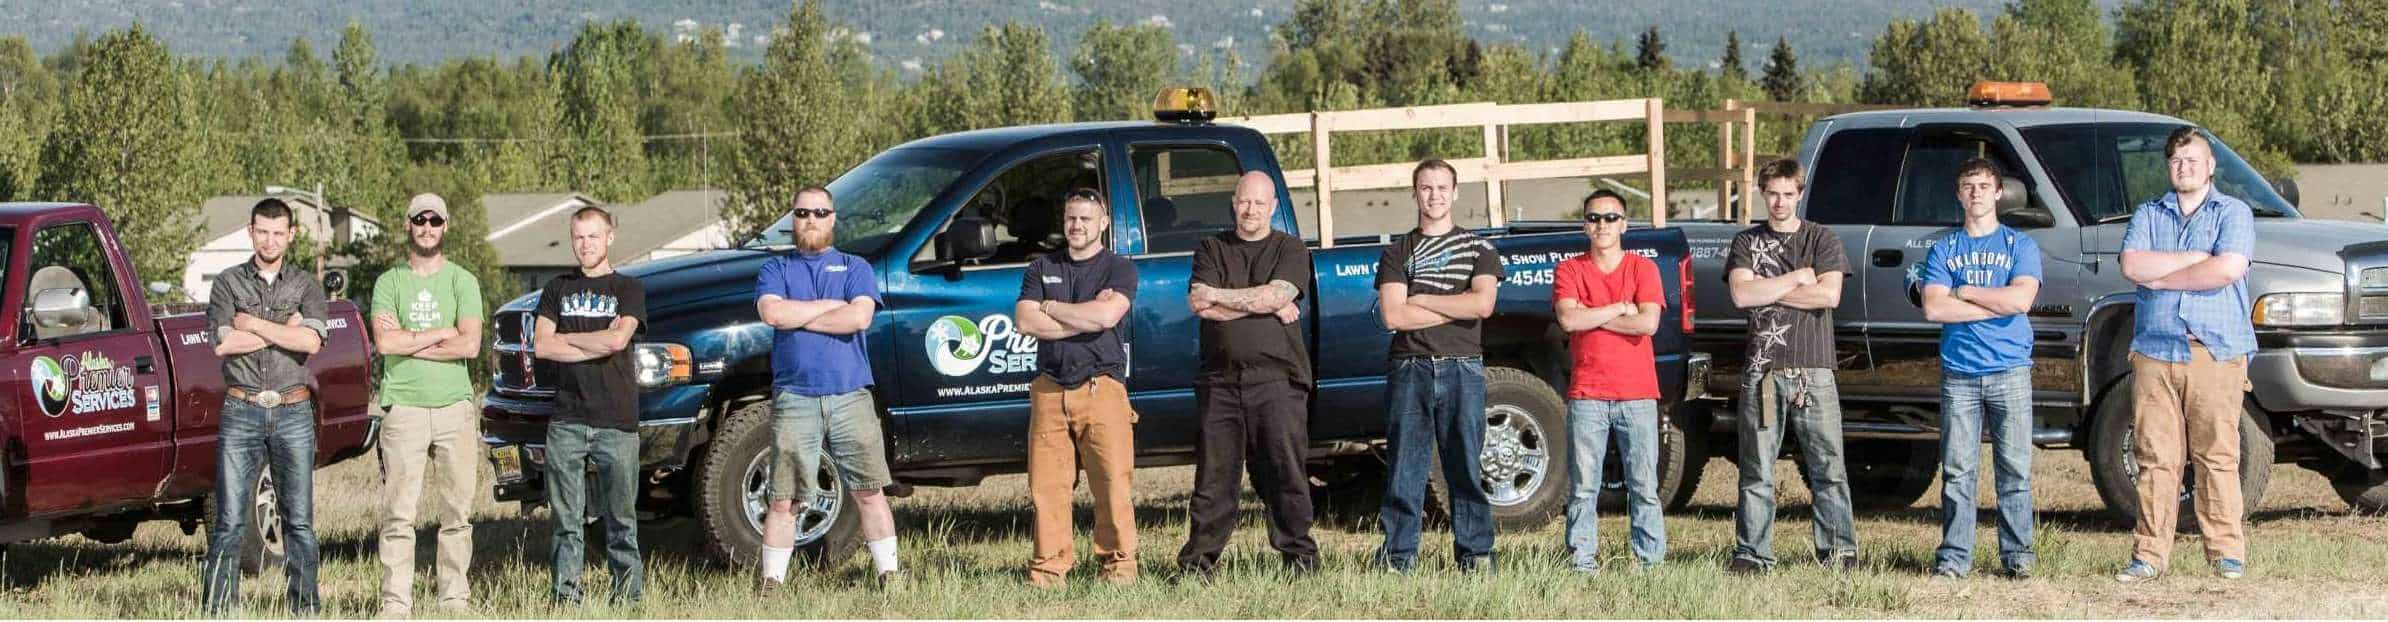 Anchorages best lawn care, landscaping and snow plowing service.